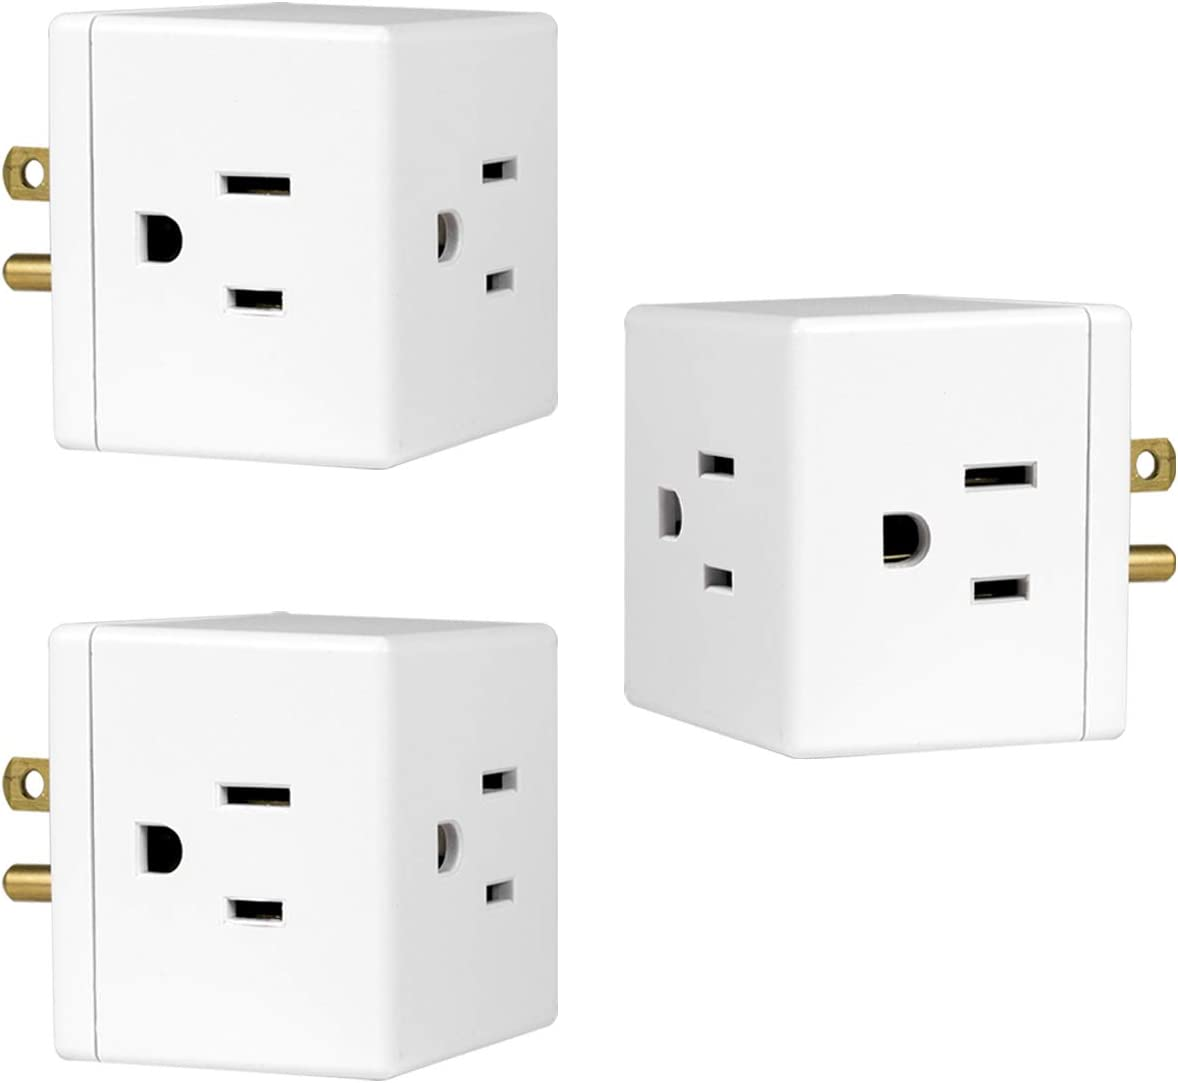 ETL Listed with Phone Charging Station Holder 3 Outlet Wall Adapter Tap Fosmon 3-Prong Grounded Indoor AC Mini Plug White